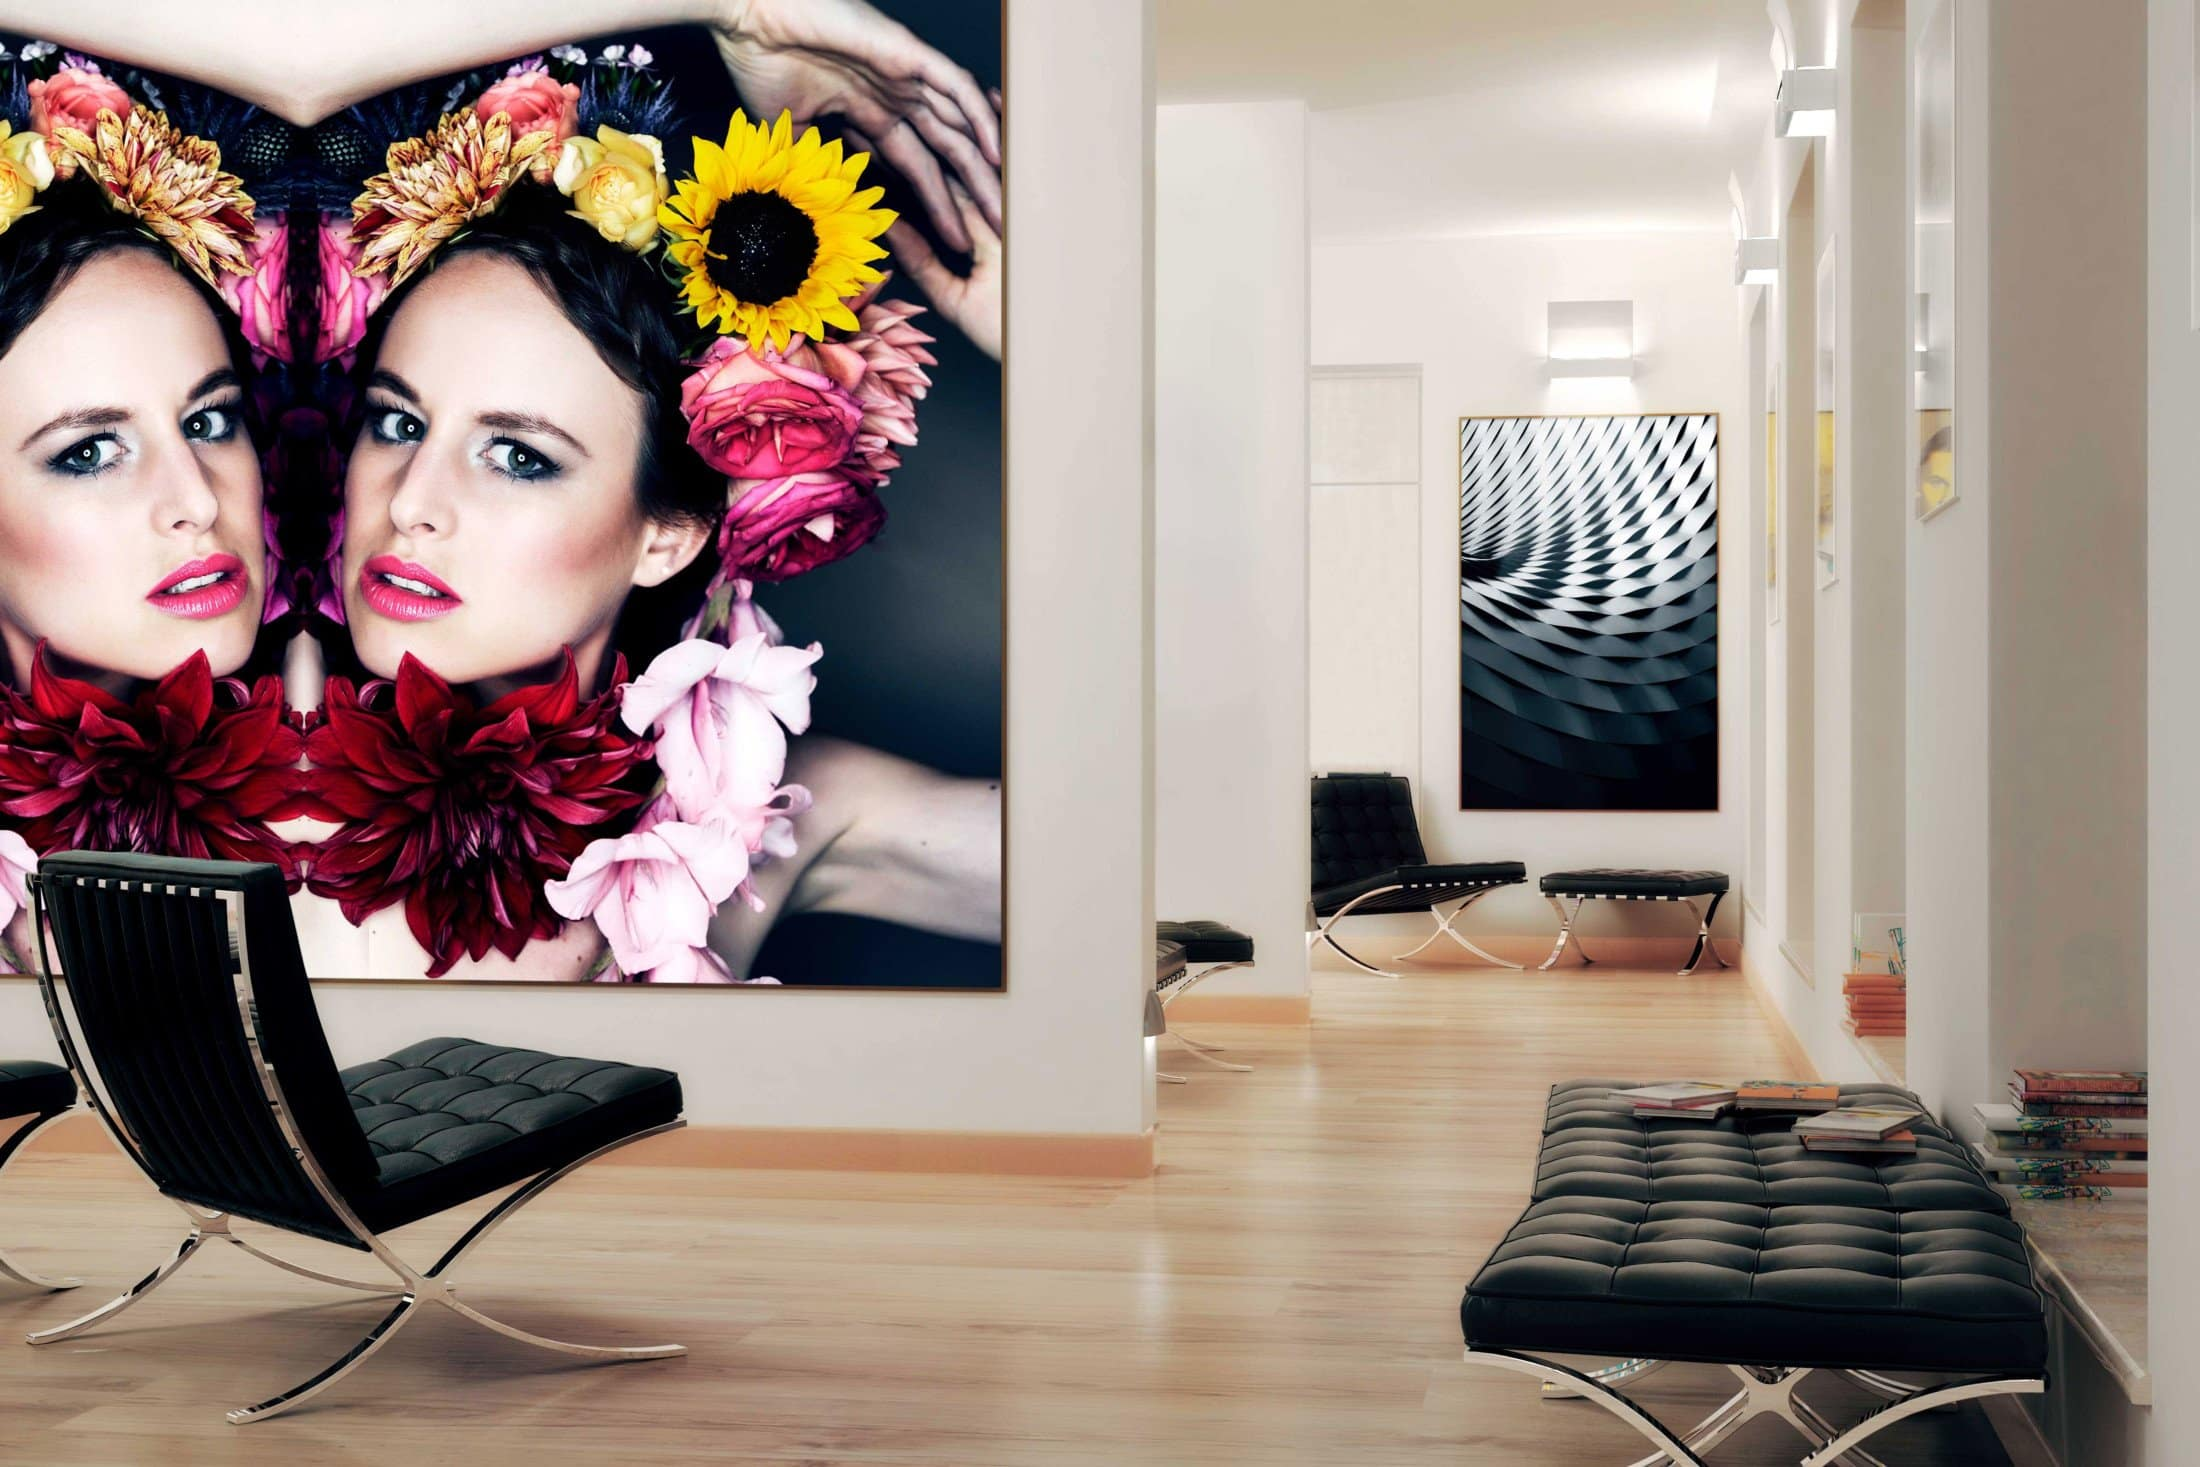 SIHL at the FESPA 2020 with products for expressive advertising messages